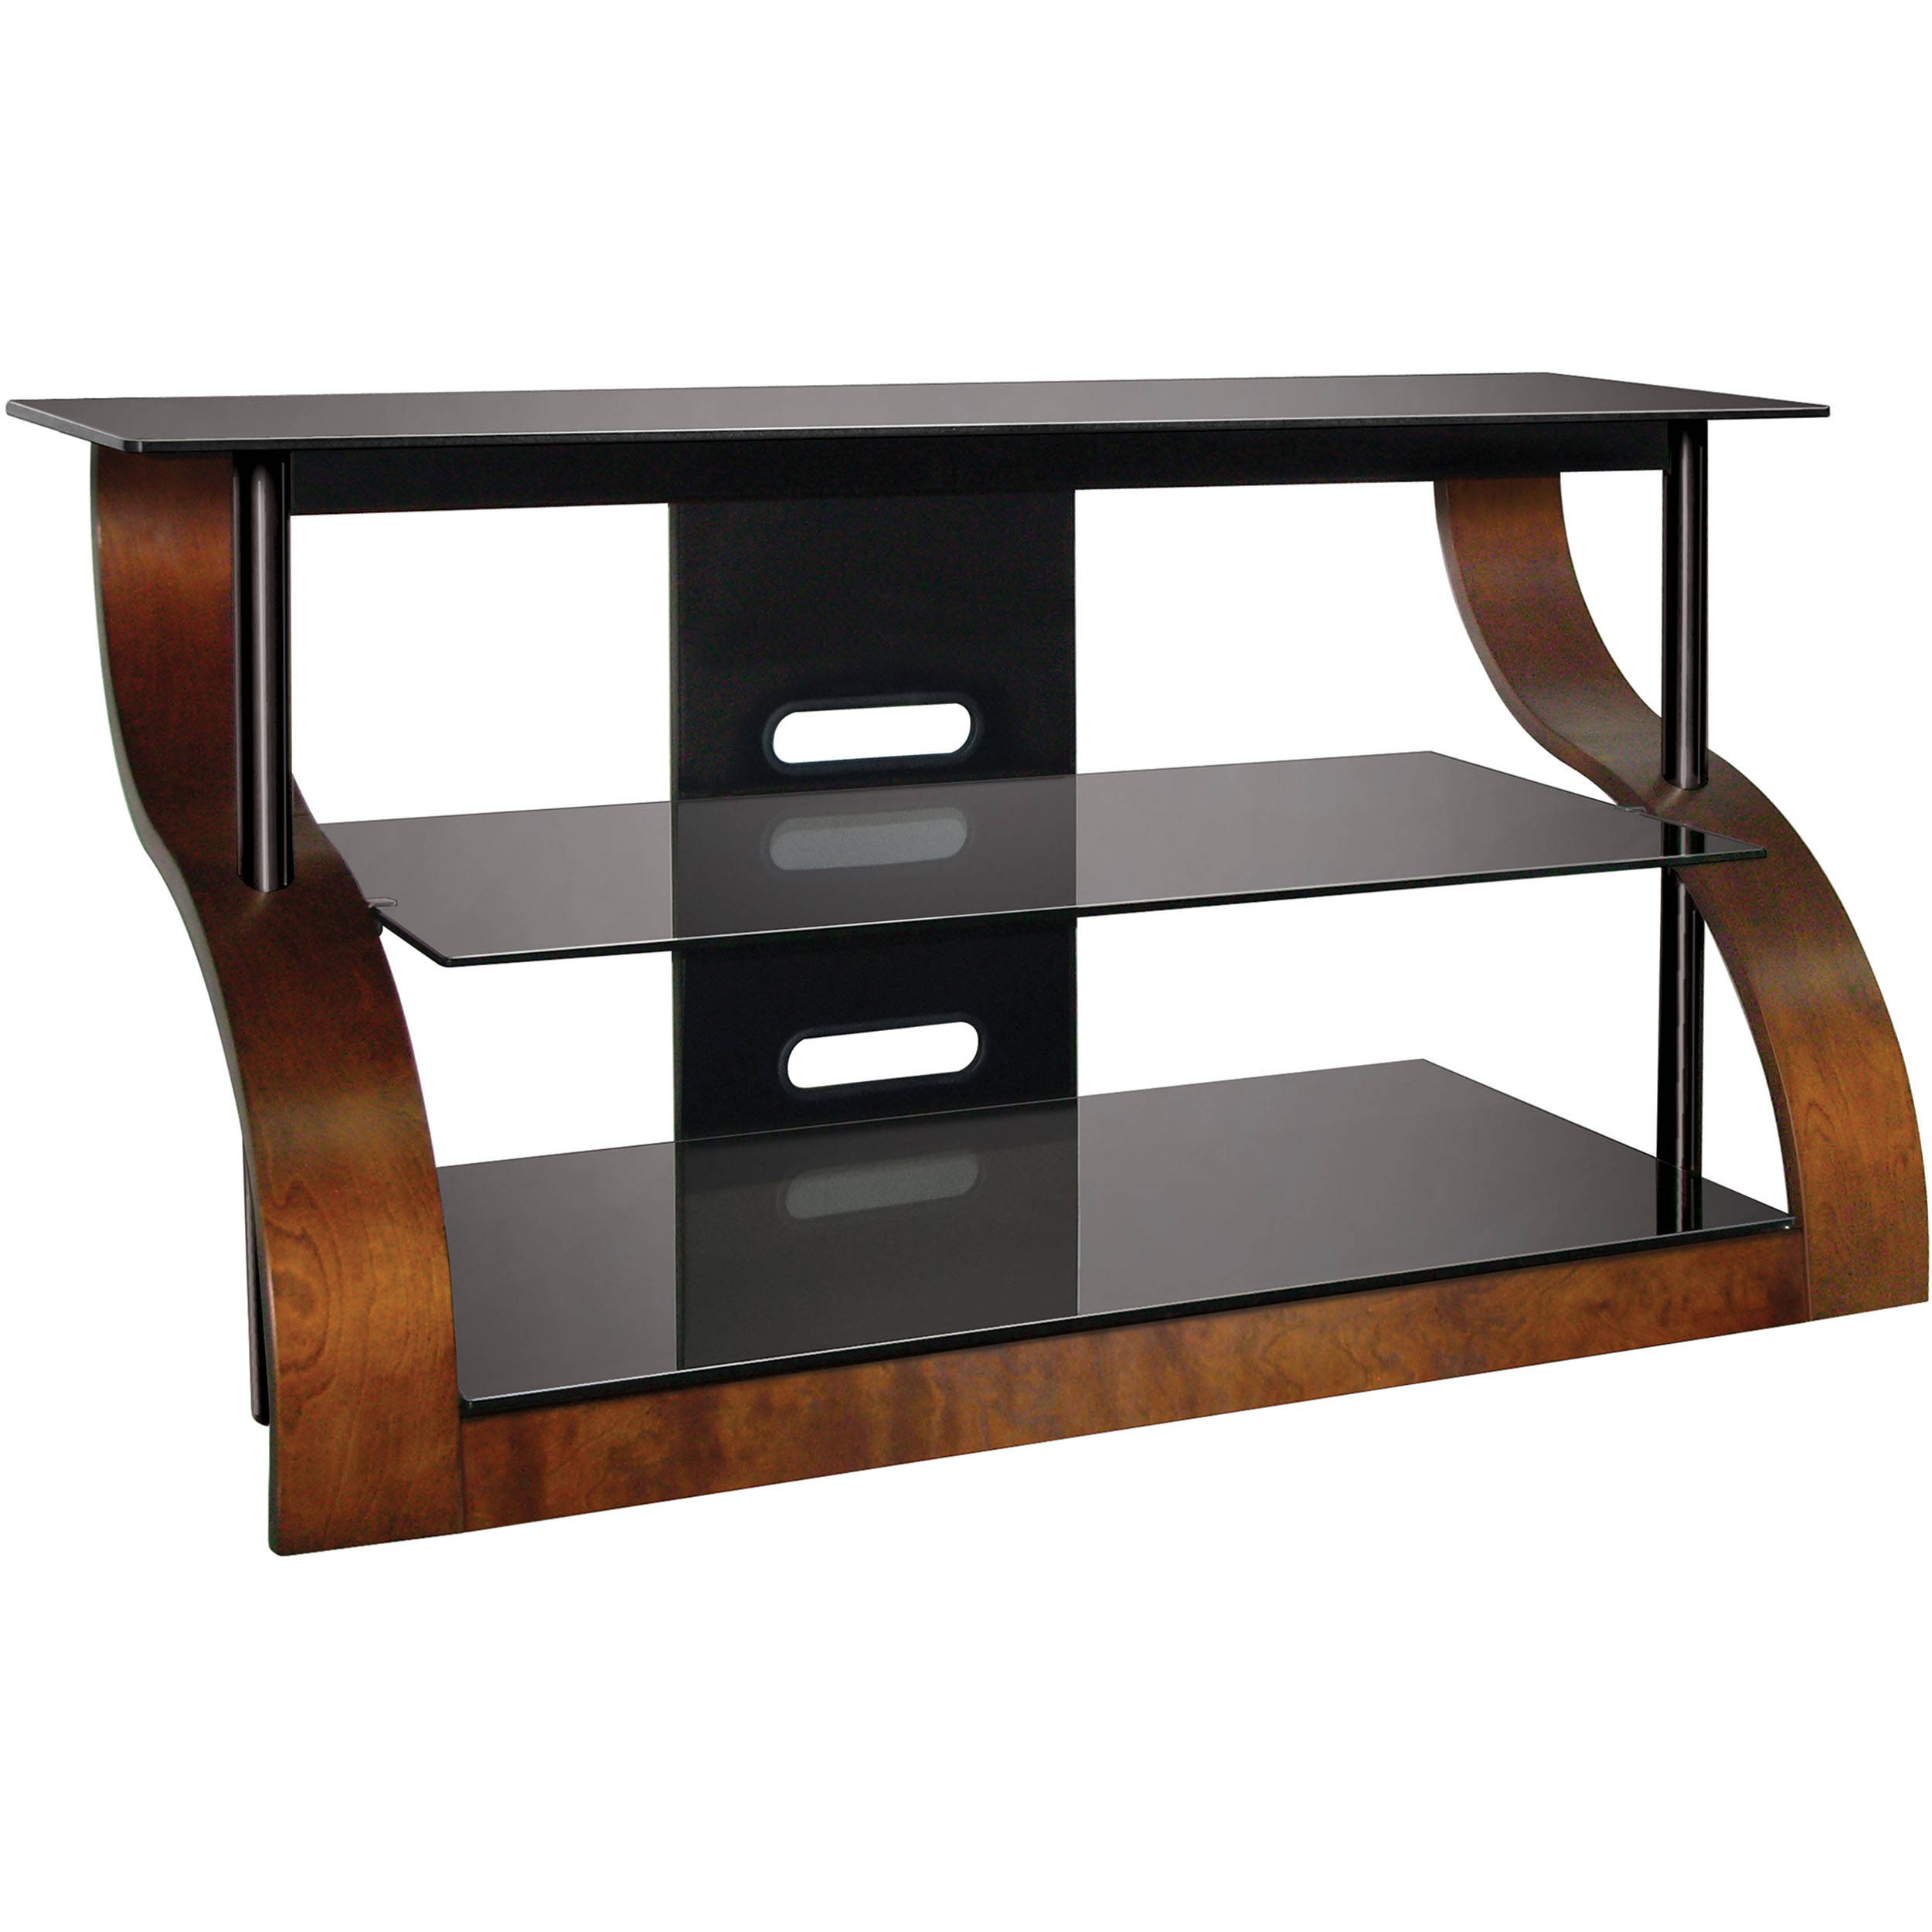 Bell O Cw343 Curved Wood A V Furniture In Vibrant Espresso Cw343